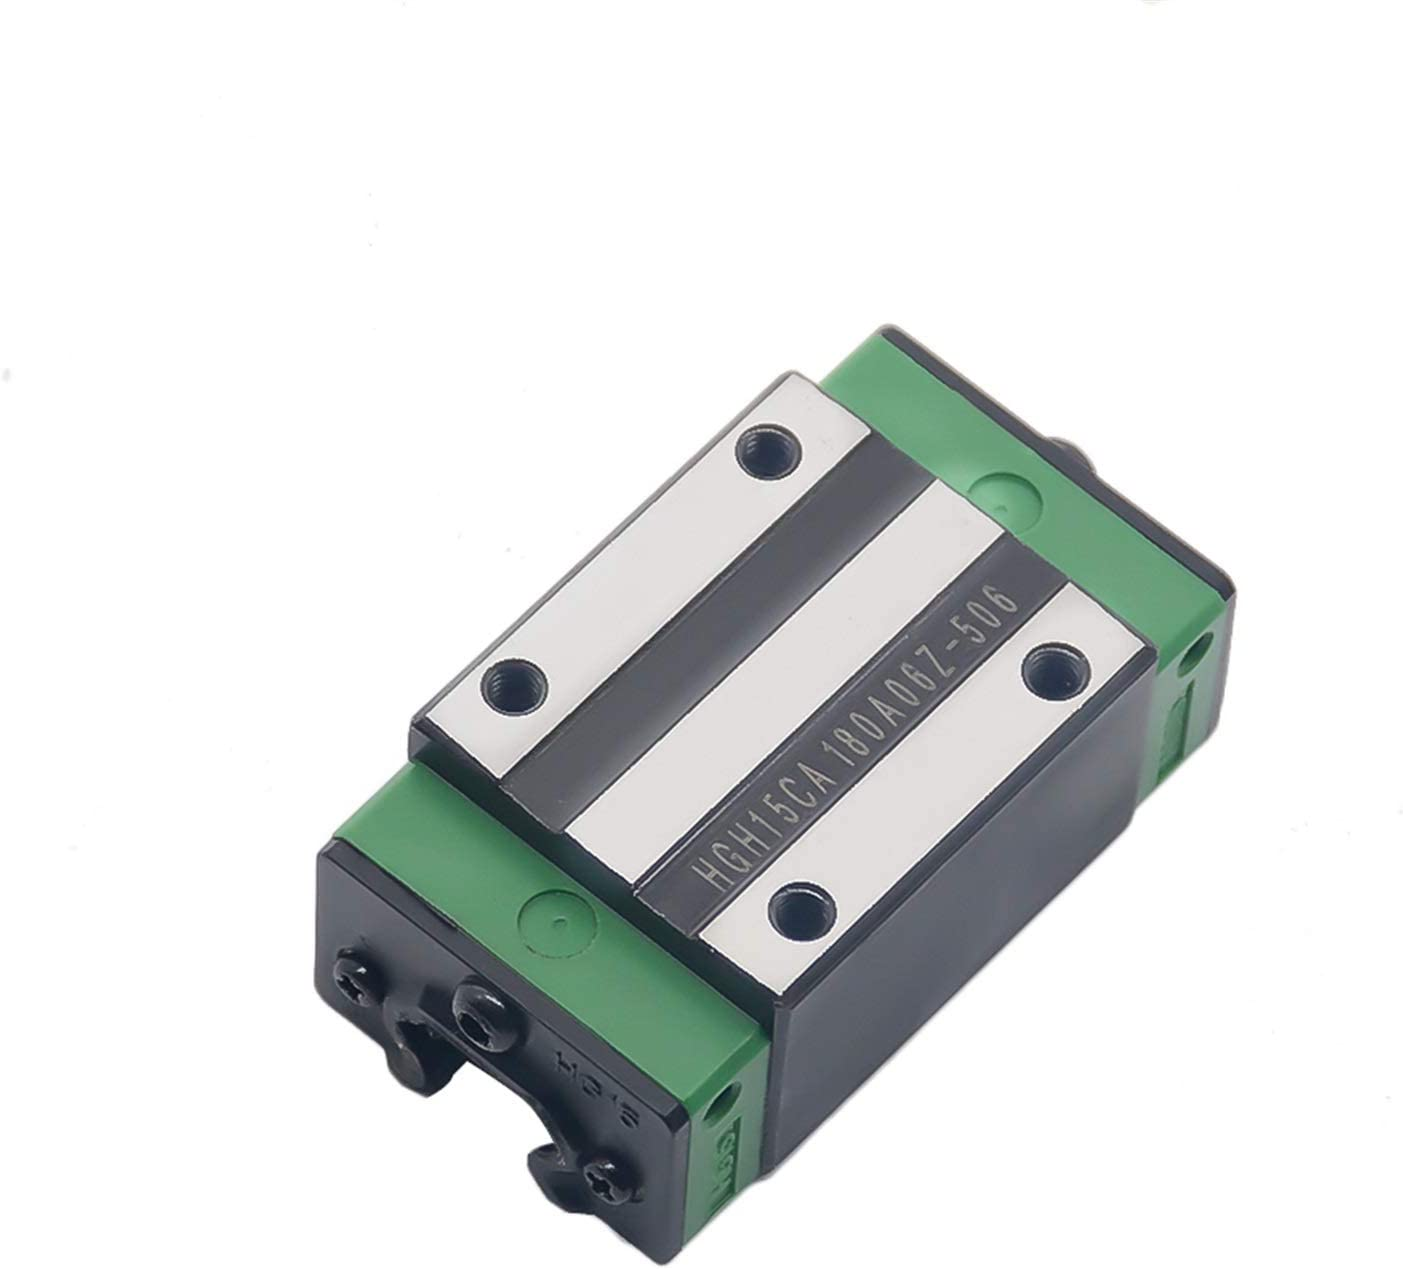 JINLI-CASE Rennen Print Parts CNC Rai New product!! Linear Router Guide Directly managed store